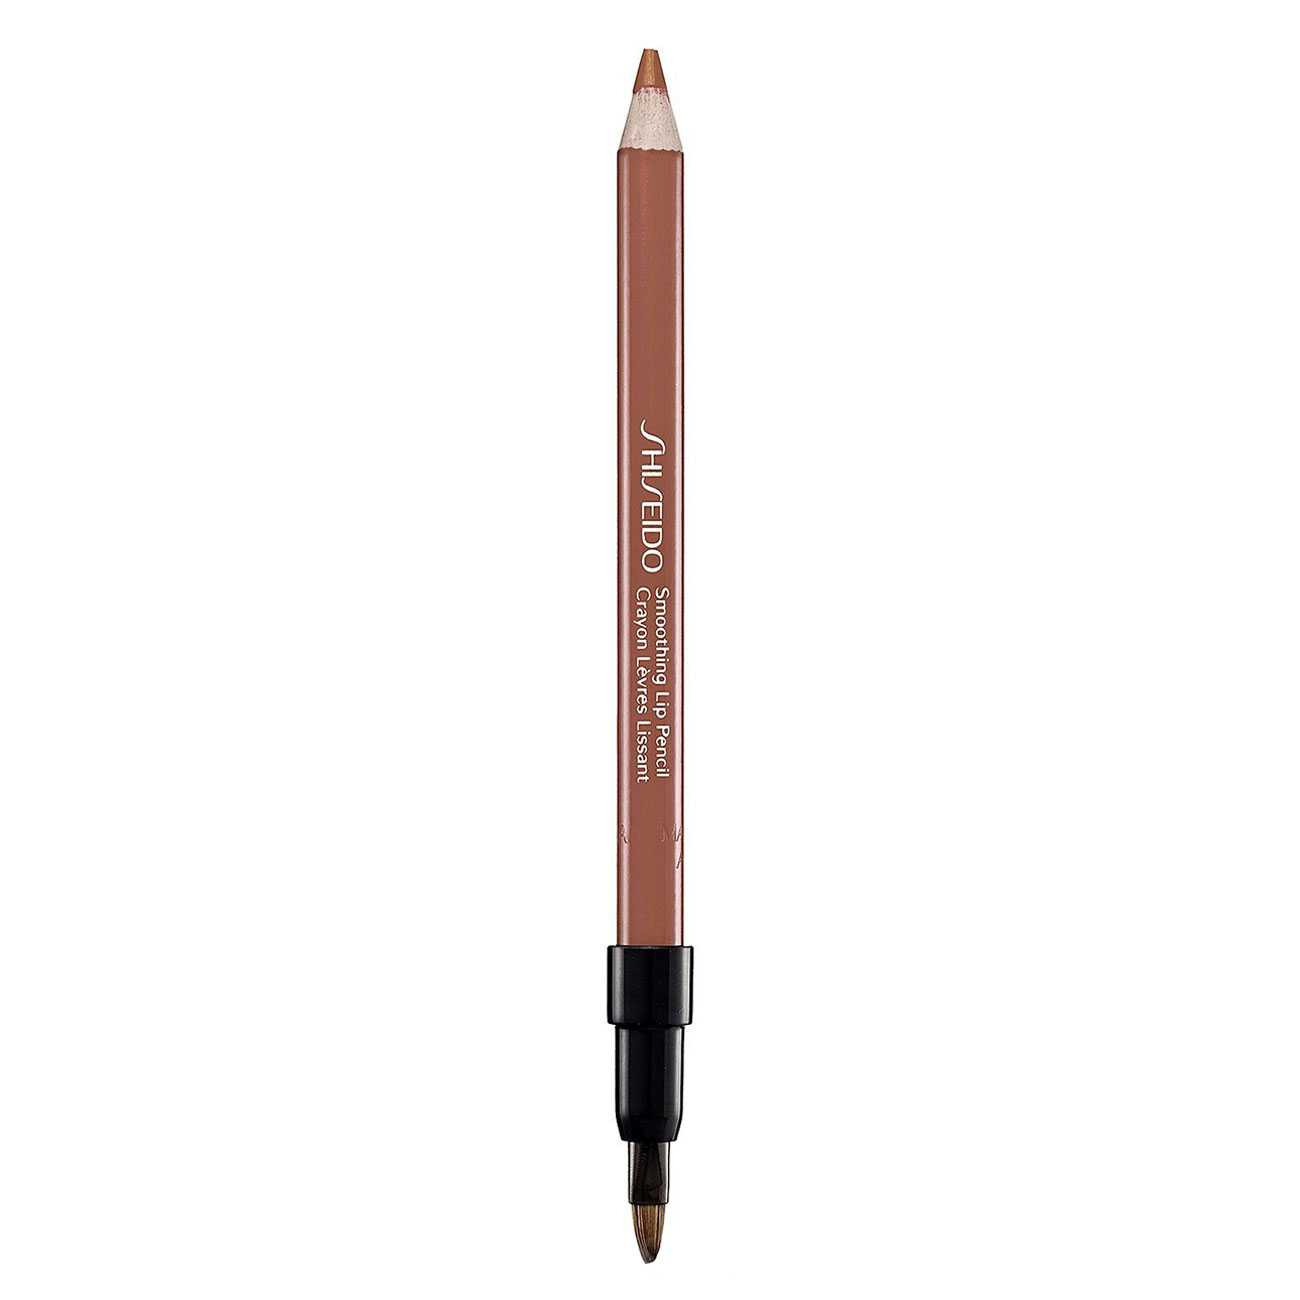 Lip Pencil Smoothing 4 G Hazel Be701 Shiseido imagine 2021 bestvalue.eu